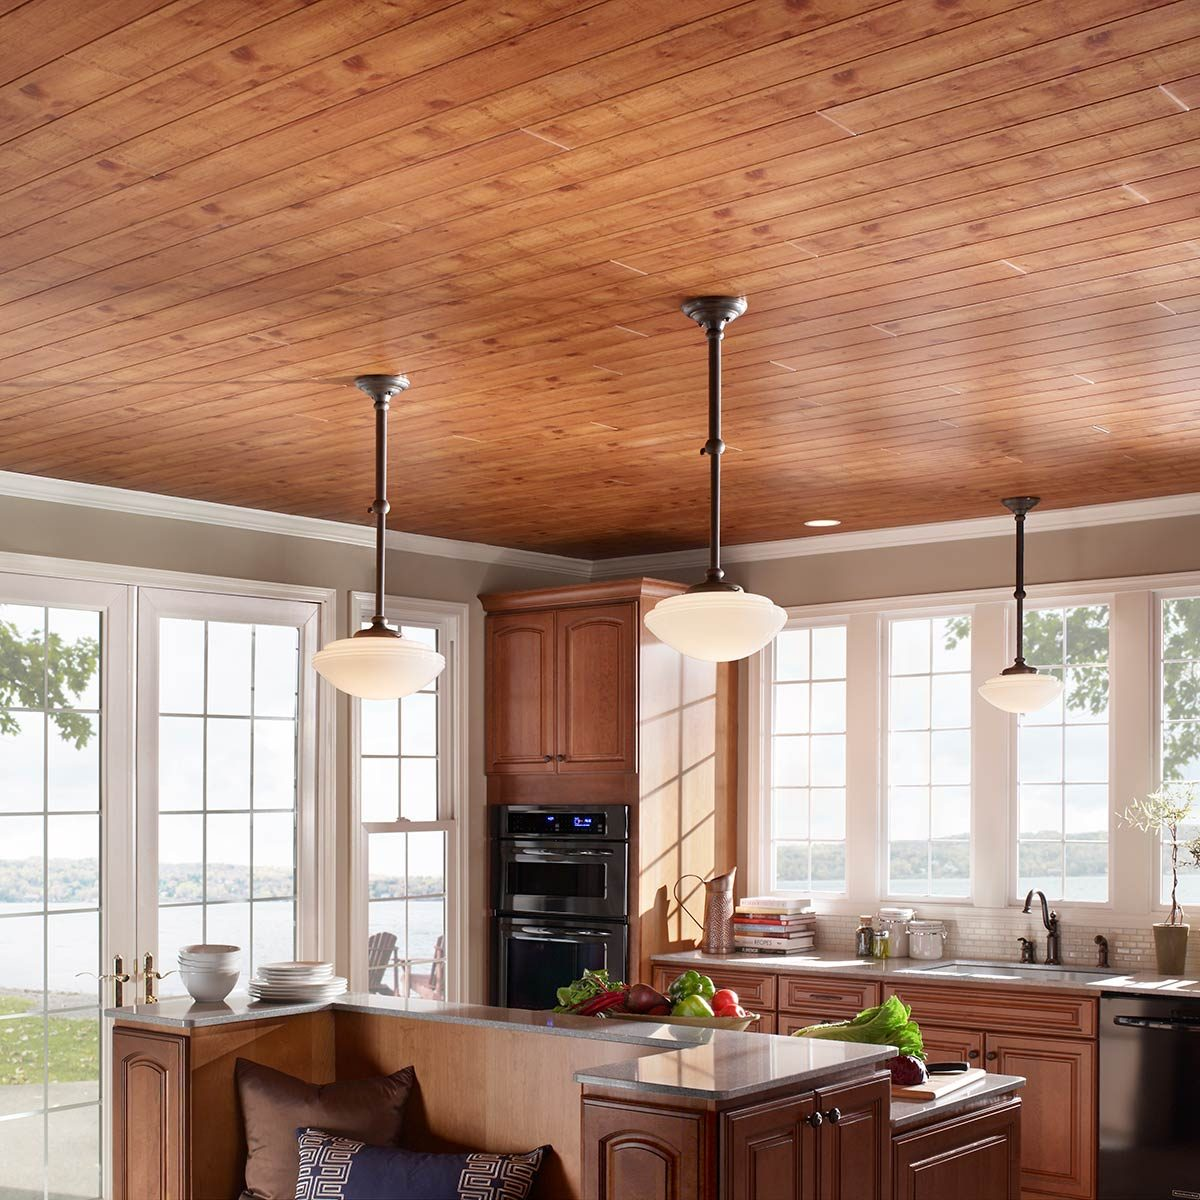 Unappealing Ceiling? Cover it up with wood-look planks | The Family ...